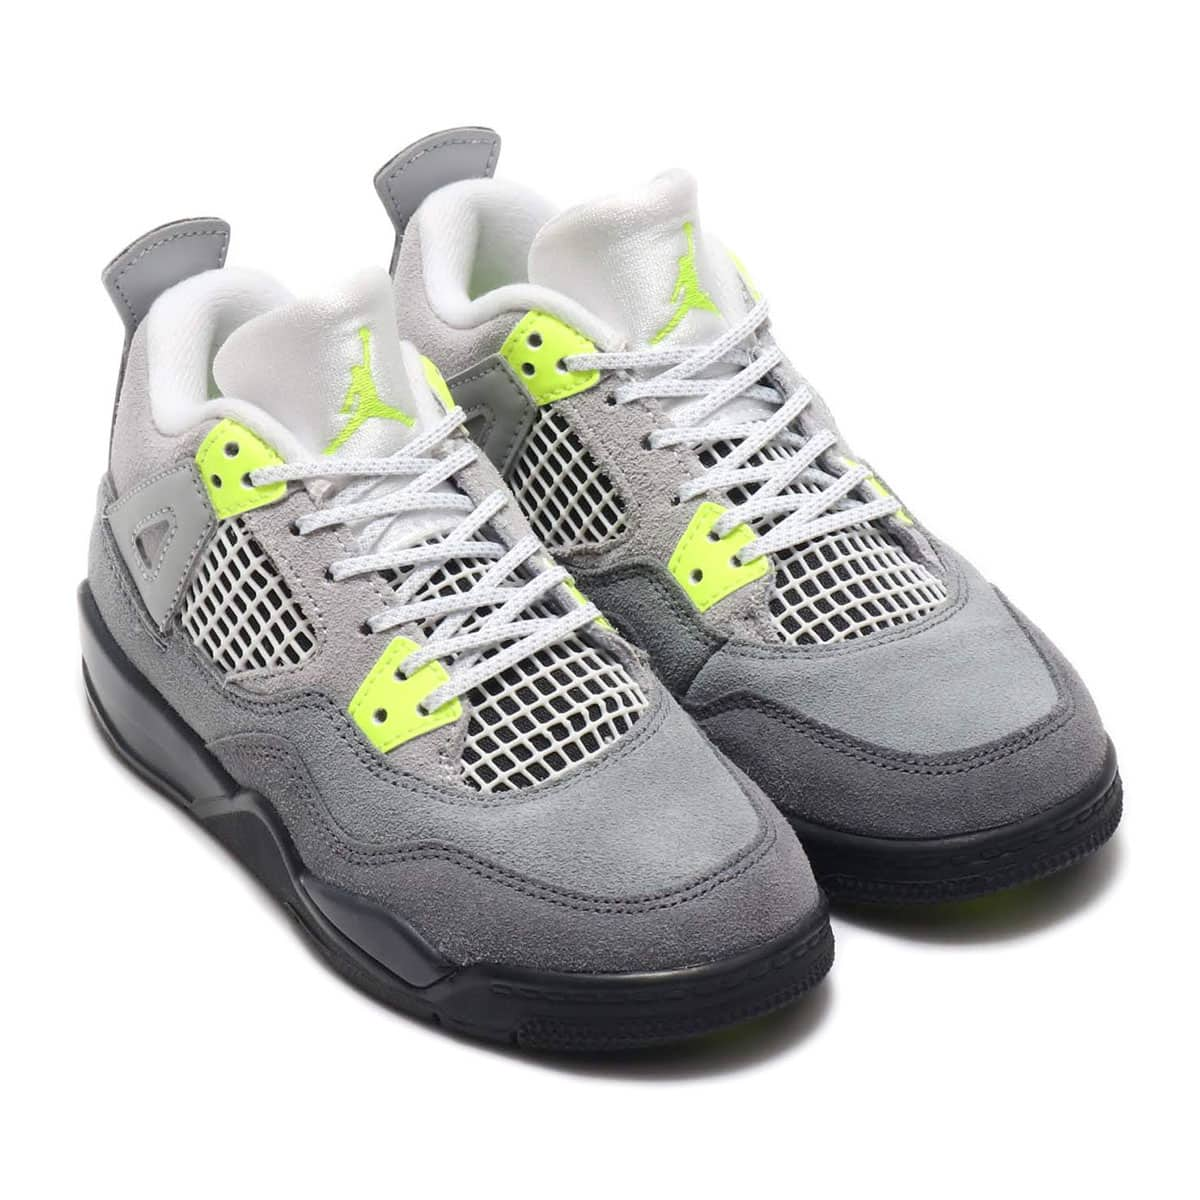 JORDAN BRAND JORDAN 4 RETRO SE PS COOL GREY/VOLT-WOLF GREY-ANTHRACITE 20SP-S_photo_large